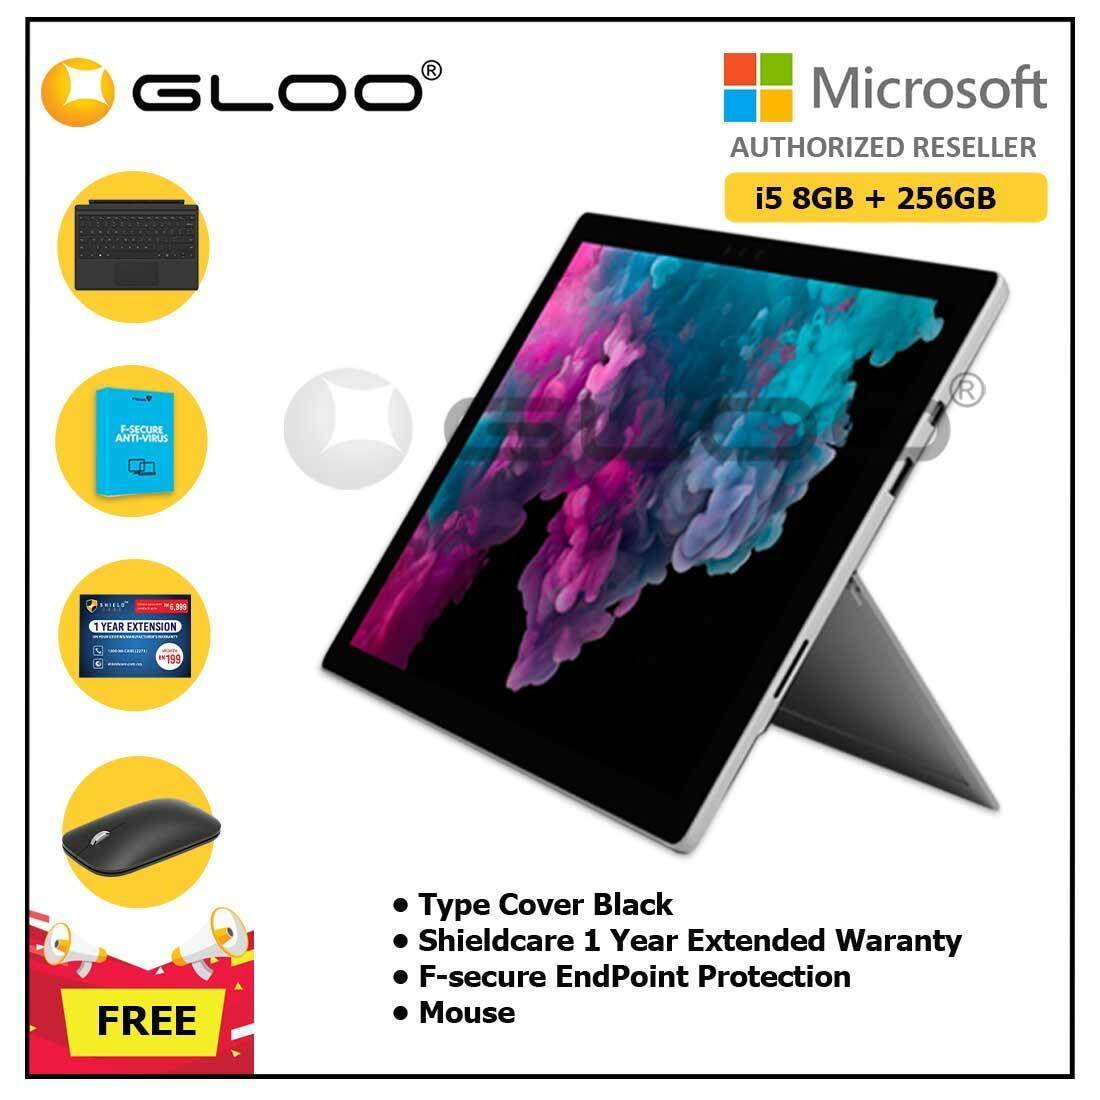 Microsoft Surface Pro 6 Core i5/8GB RAM - 256GB + Type Cover Black + Shieldcare 1 Year Extended Warranty + F-Secure EndPoint Protection + Mouse